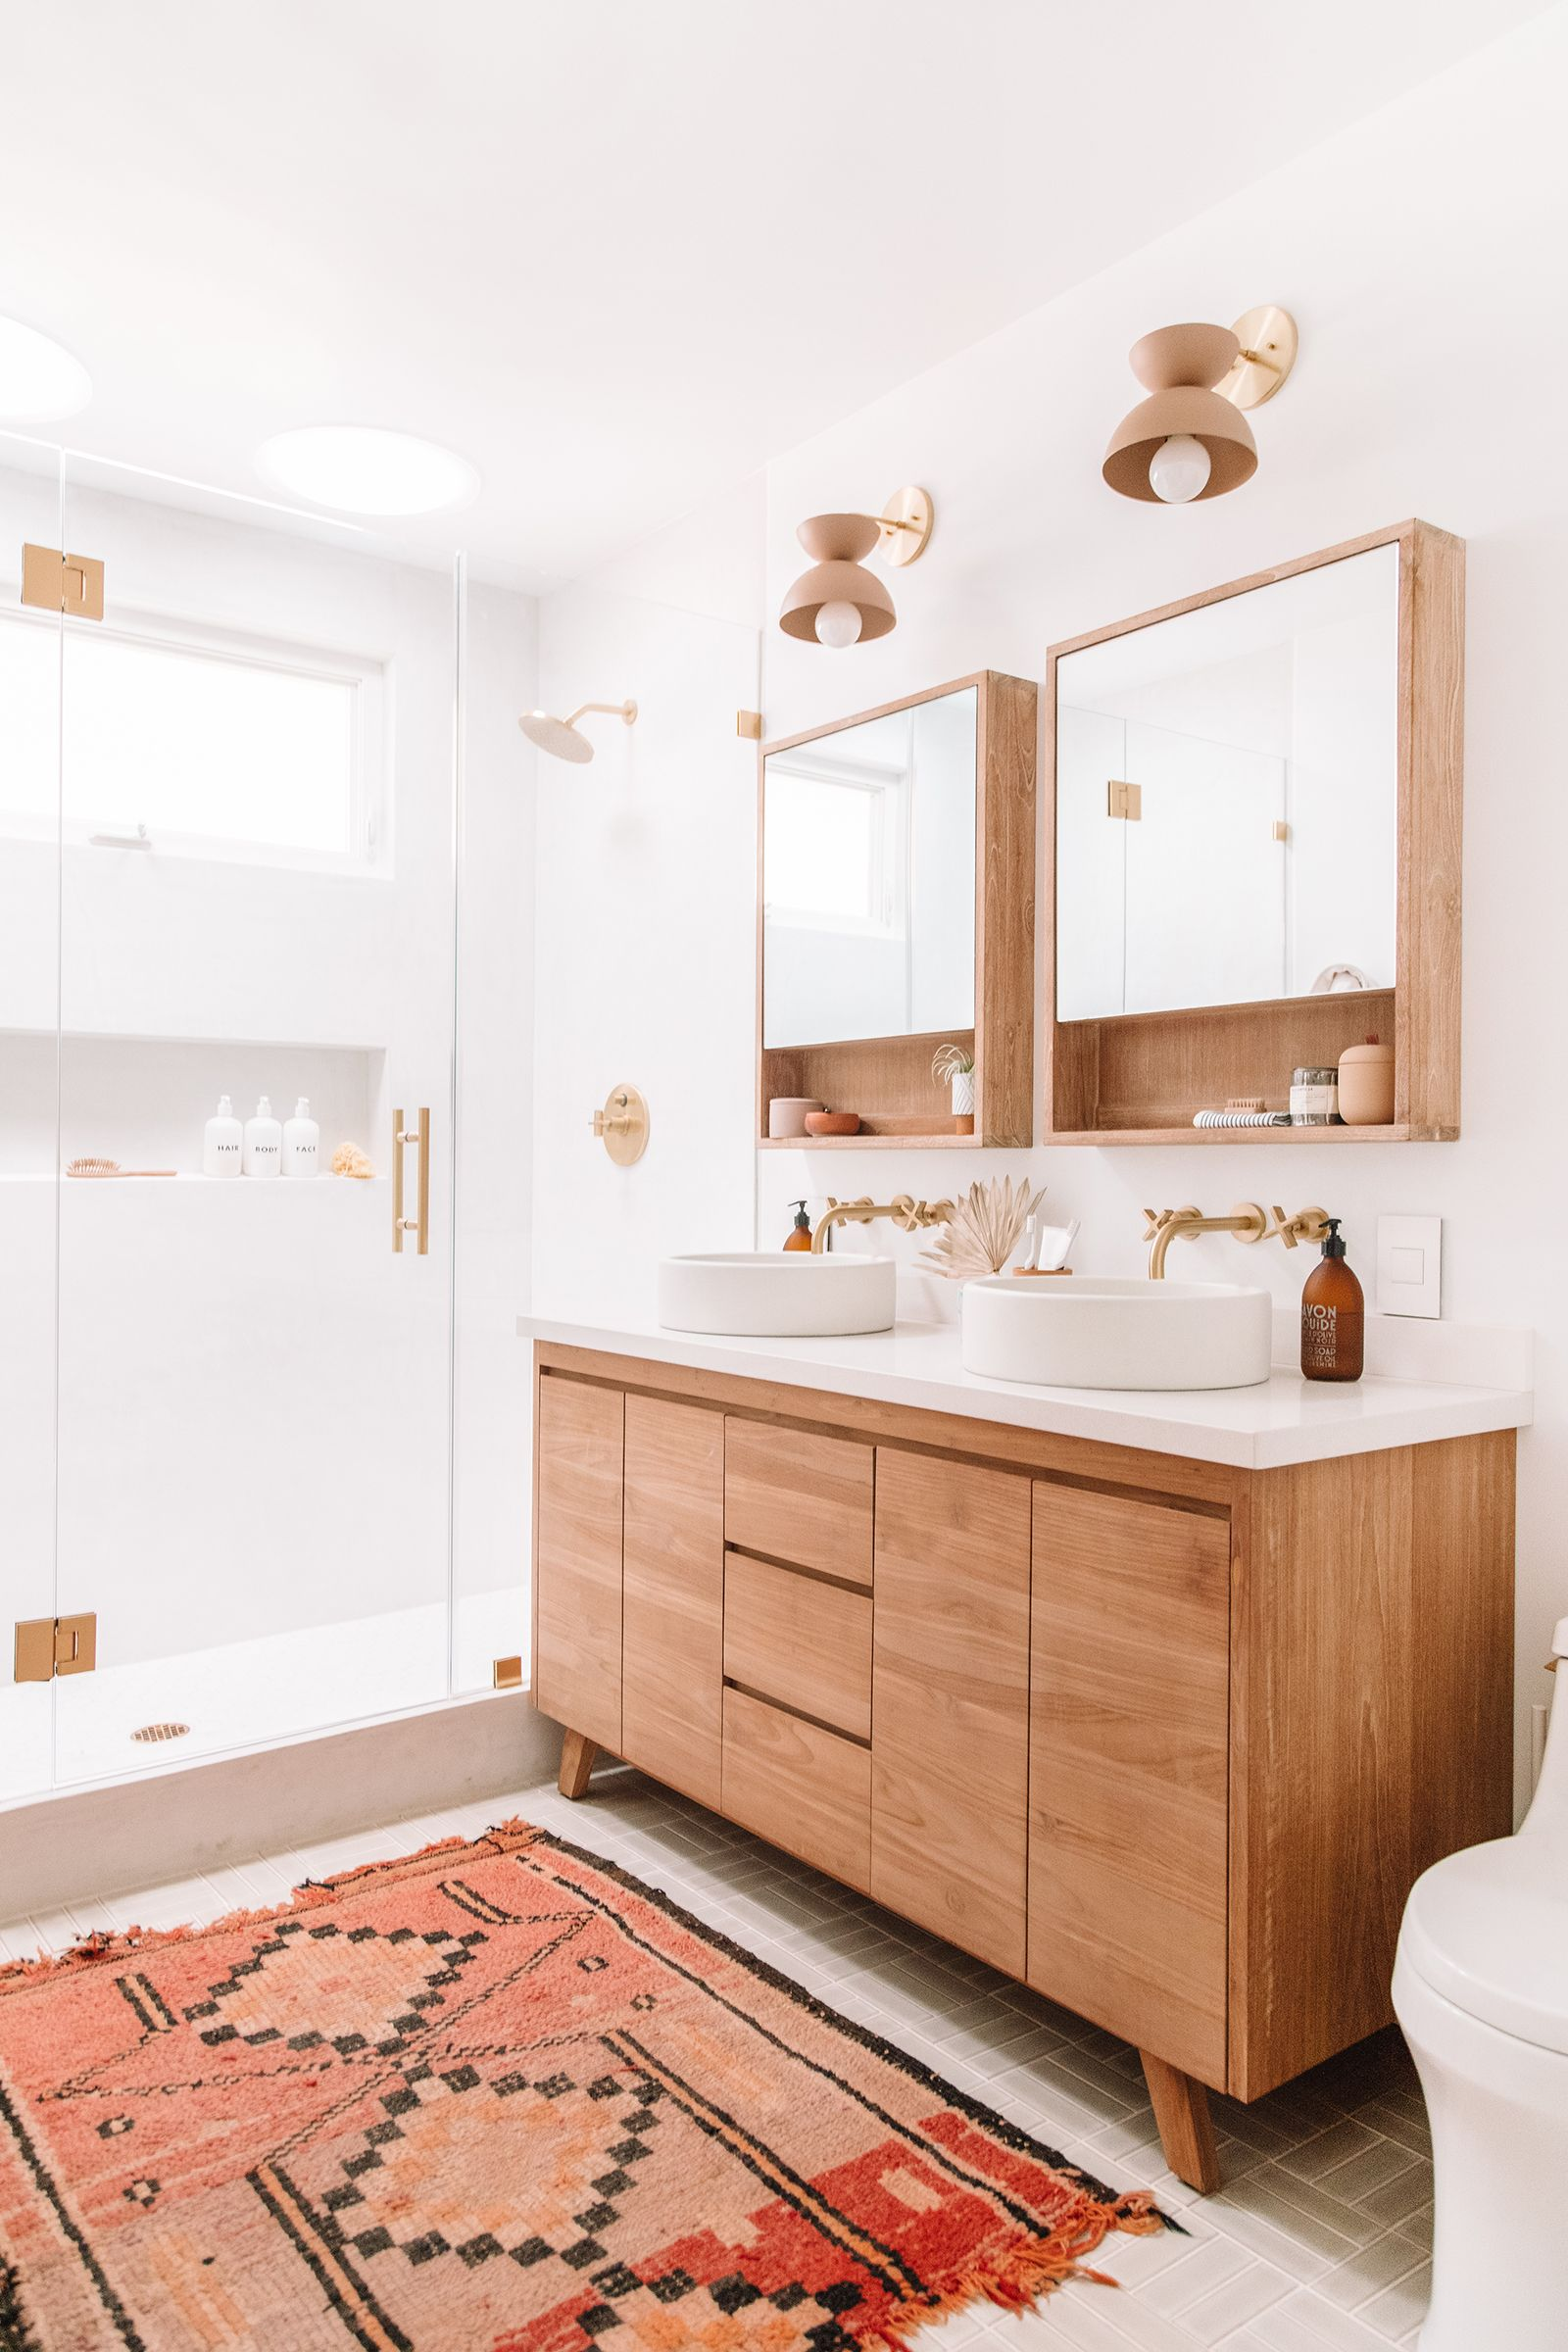 Three Things Striped Ceilings Mauve Marble A Beautiful Bathroom Makeover With Images Bathroom Storage Solutions Bathroom Makeover Bathroom Design